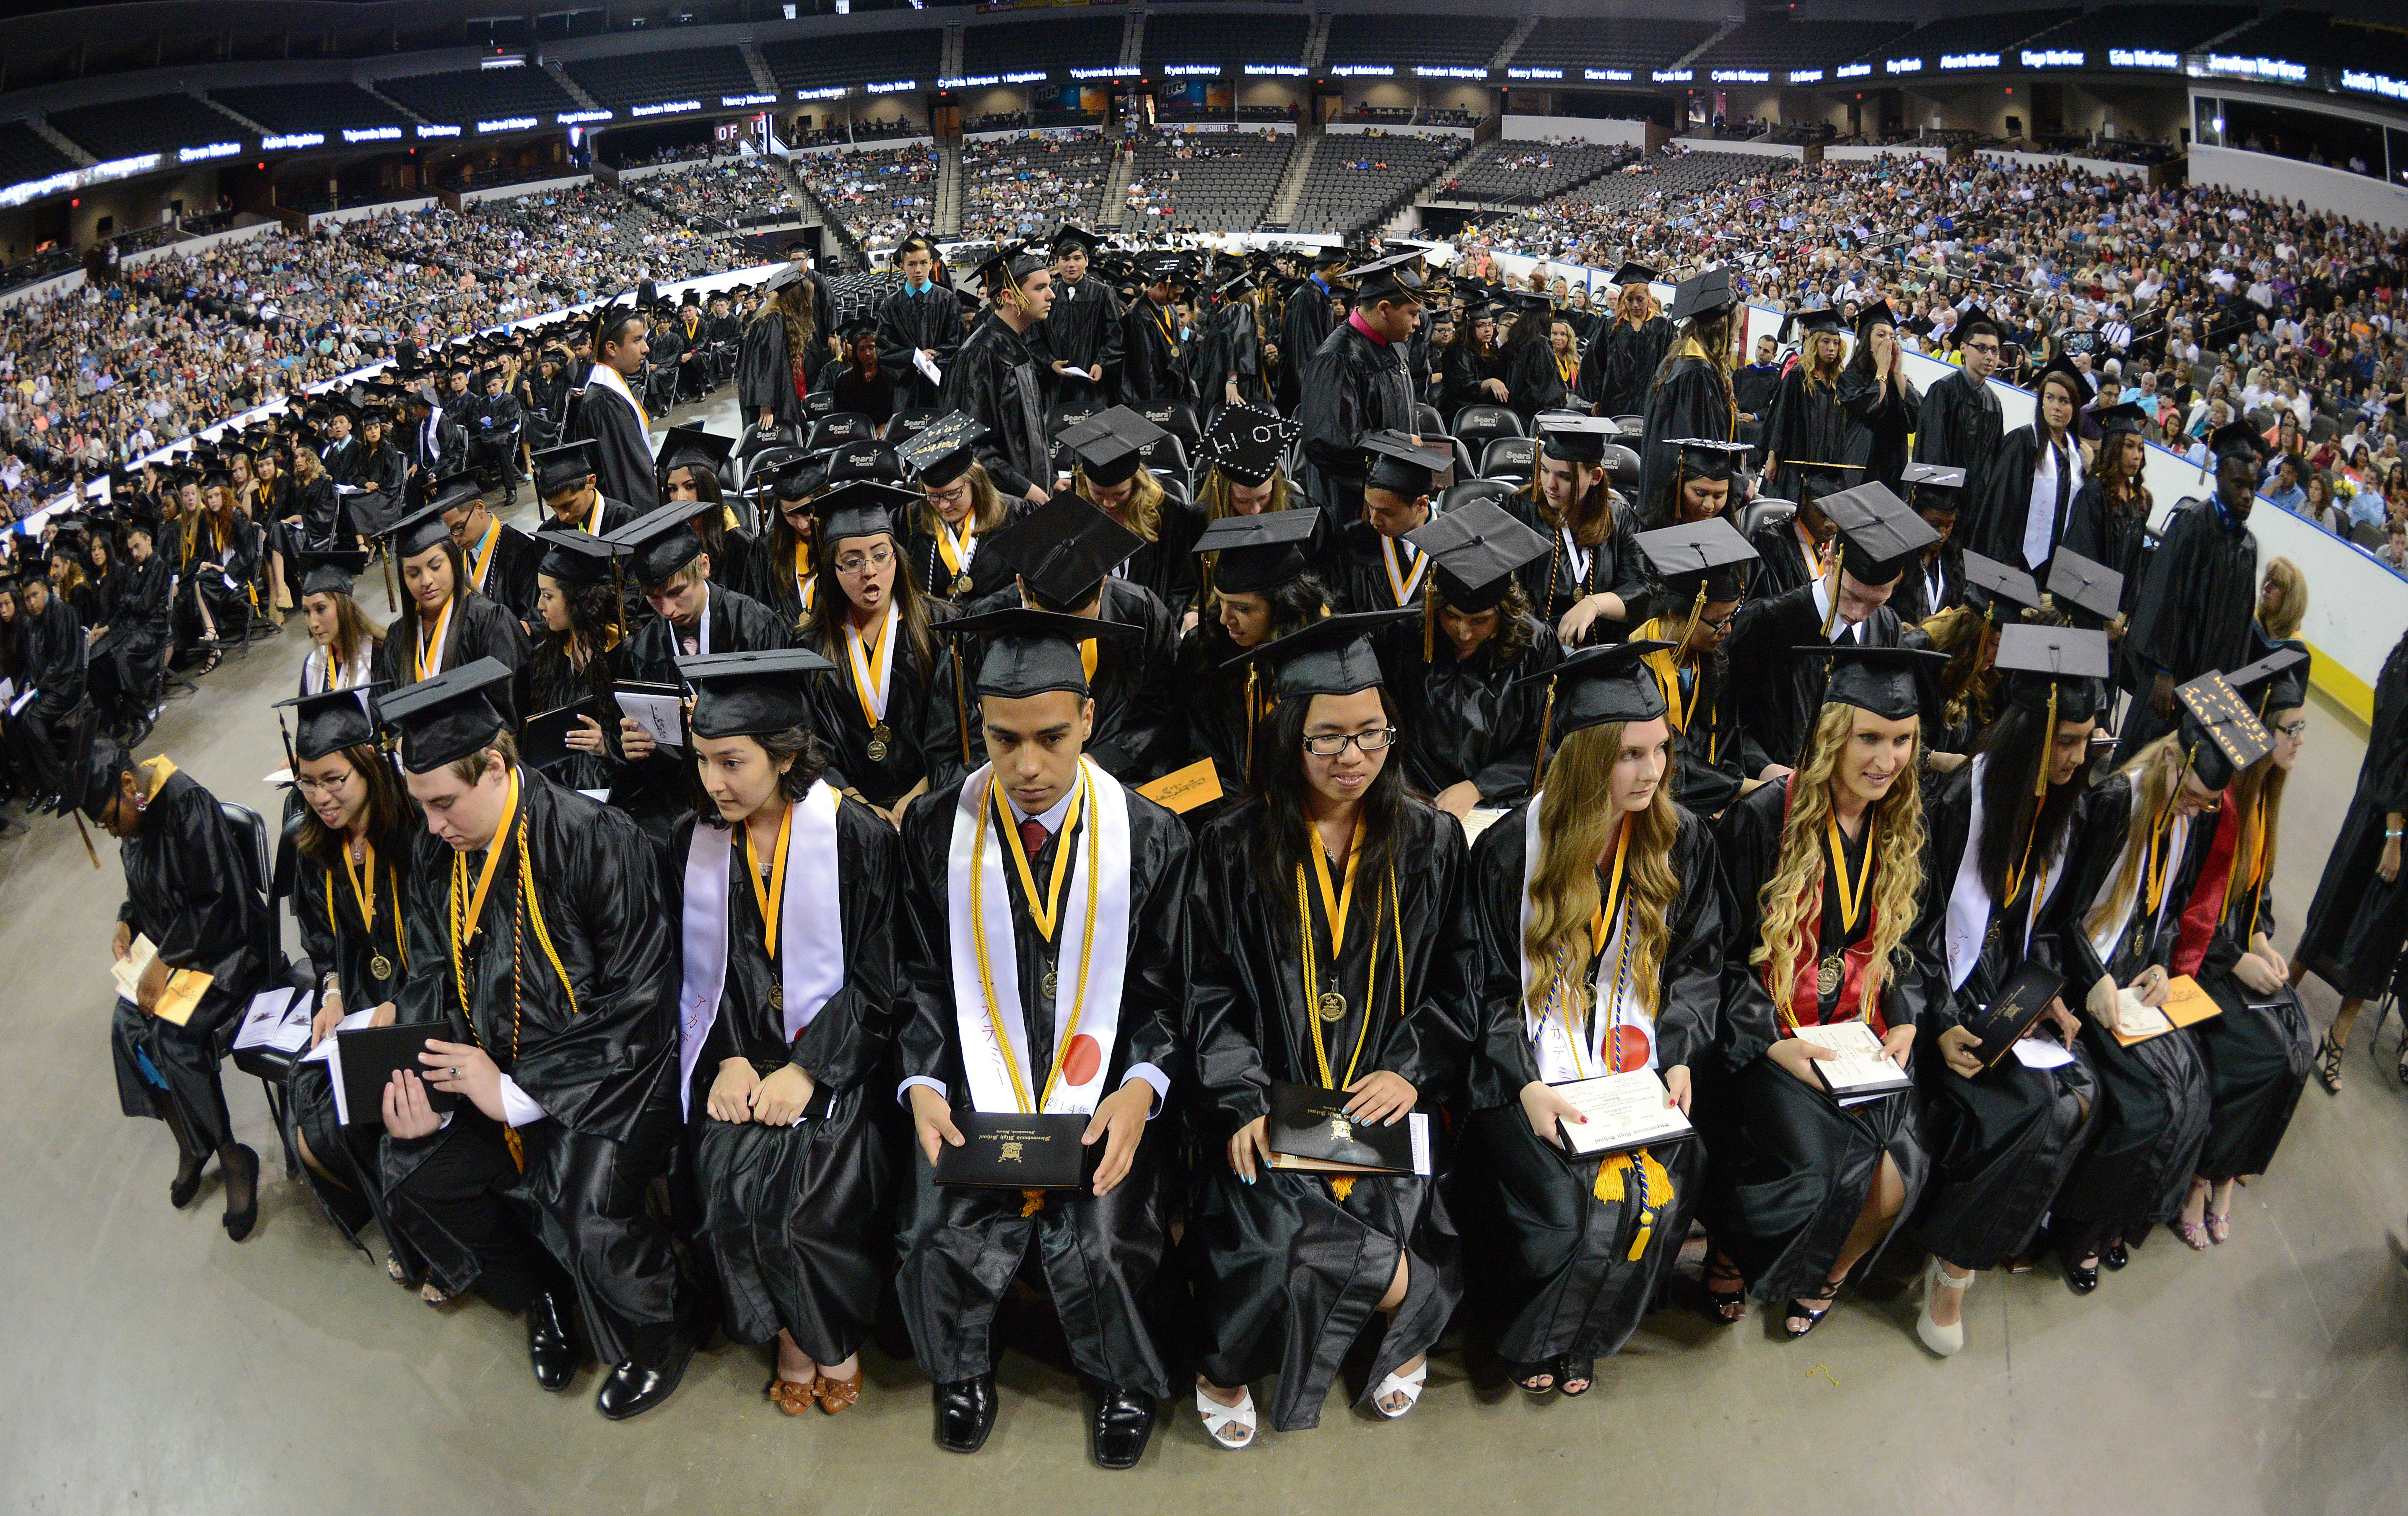 The 35th commencement exercises of Streamwood High School at  the Sears Centre in Hoffman Estates on Saturday.